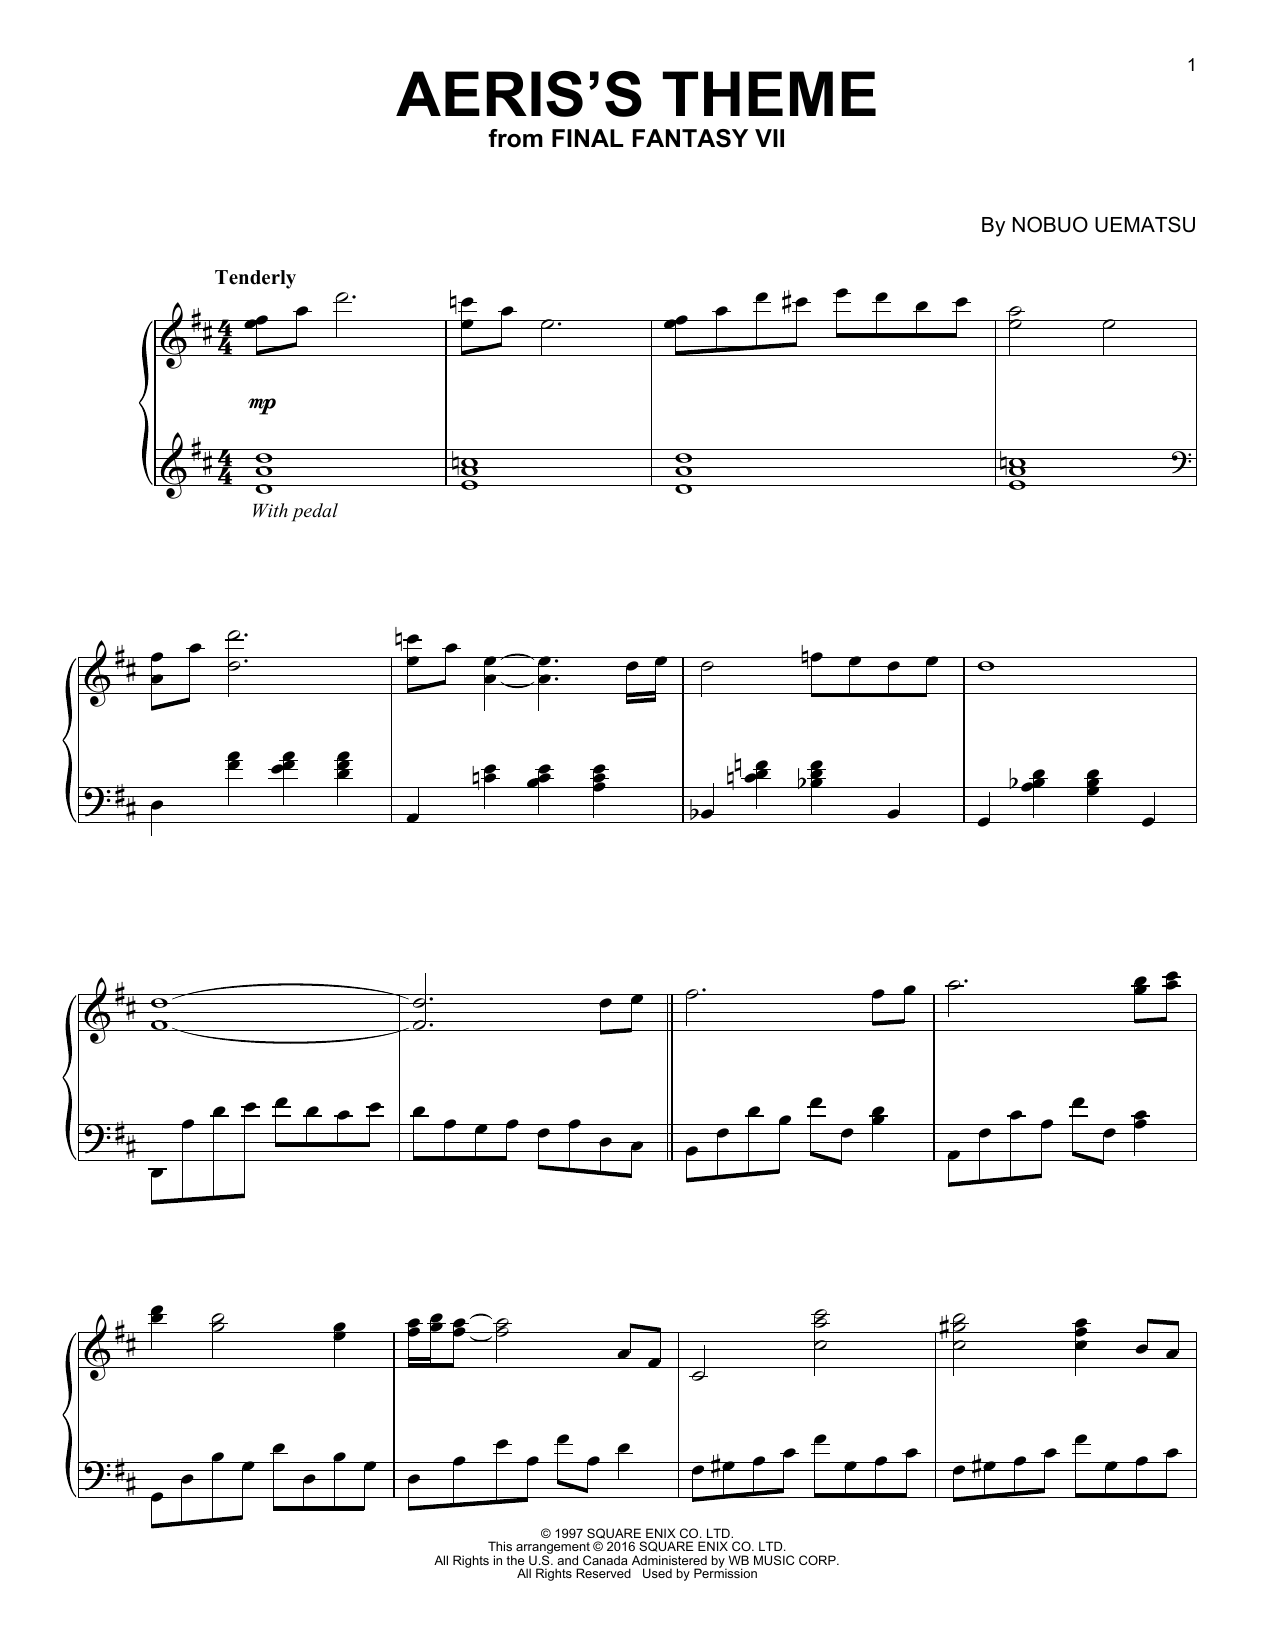 Sheet Music Digital Files To Print Licensed Video Game Digital